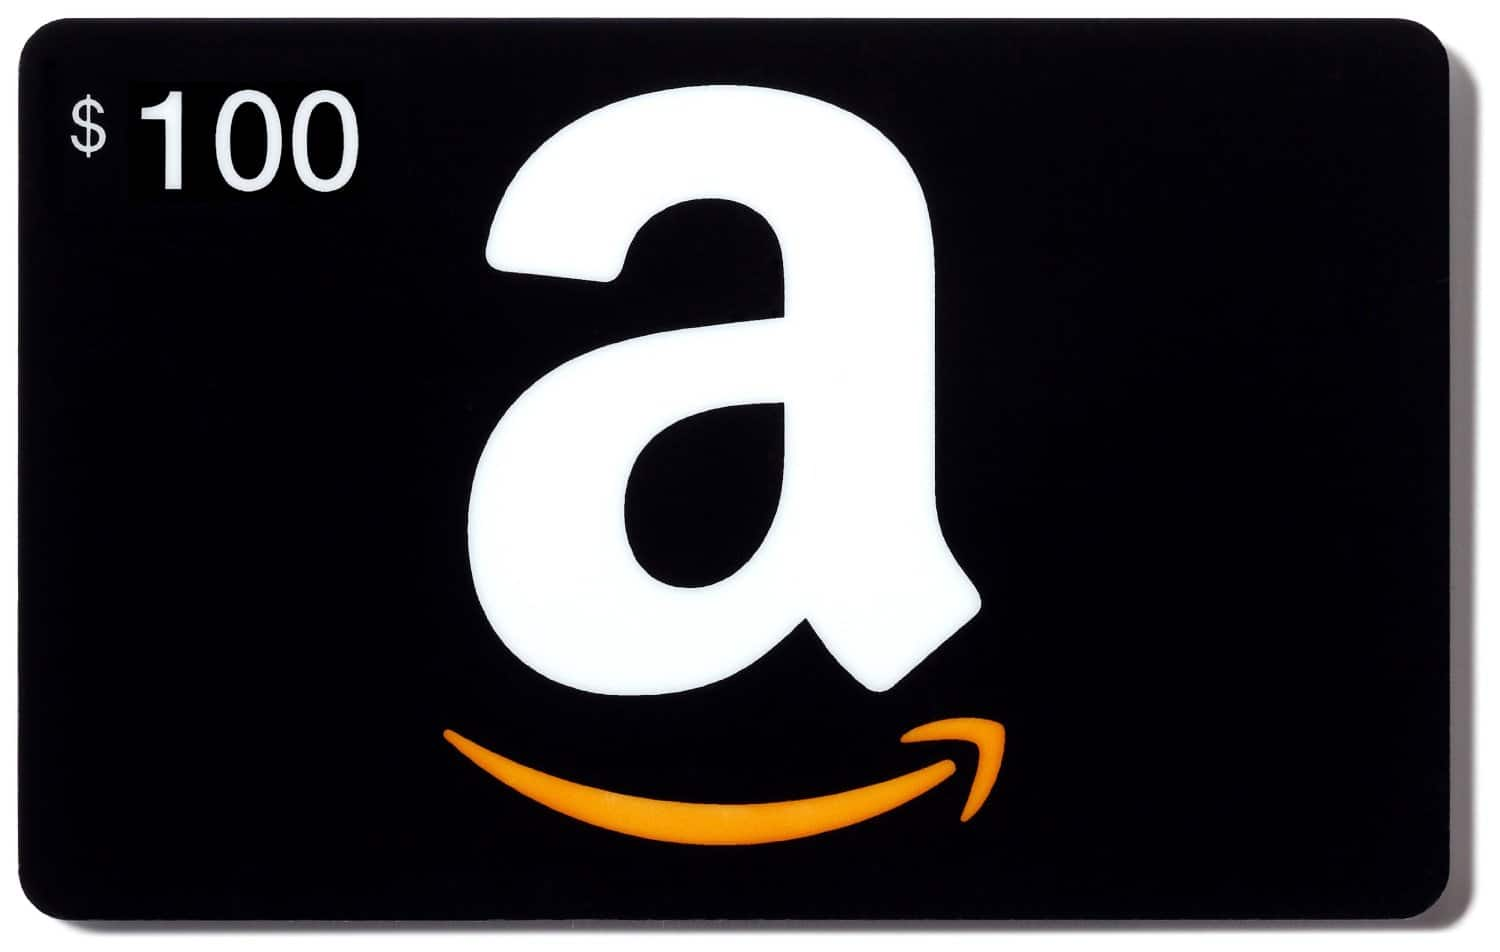 Get a $5 credit for reloading your Amazon.com Gift Card Balance with $100 or more (YMMV)